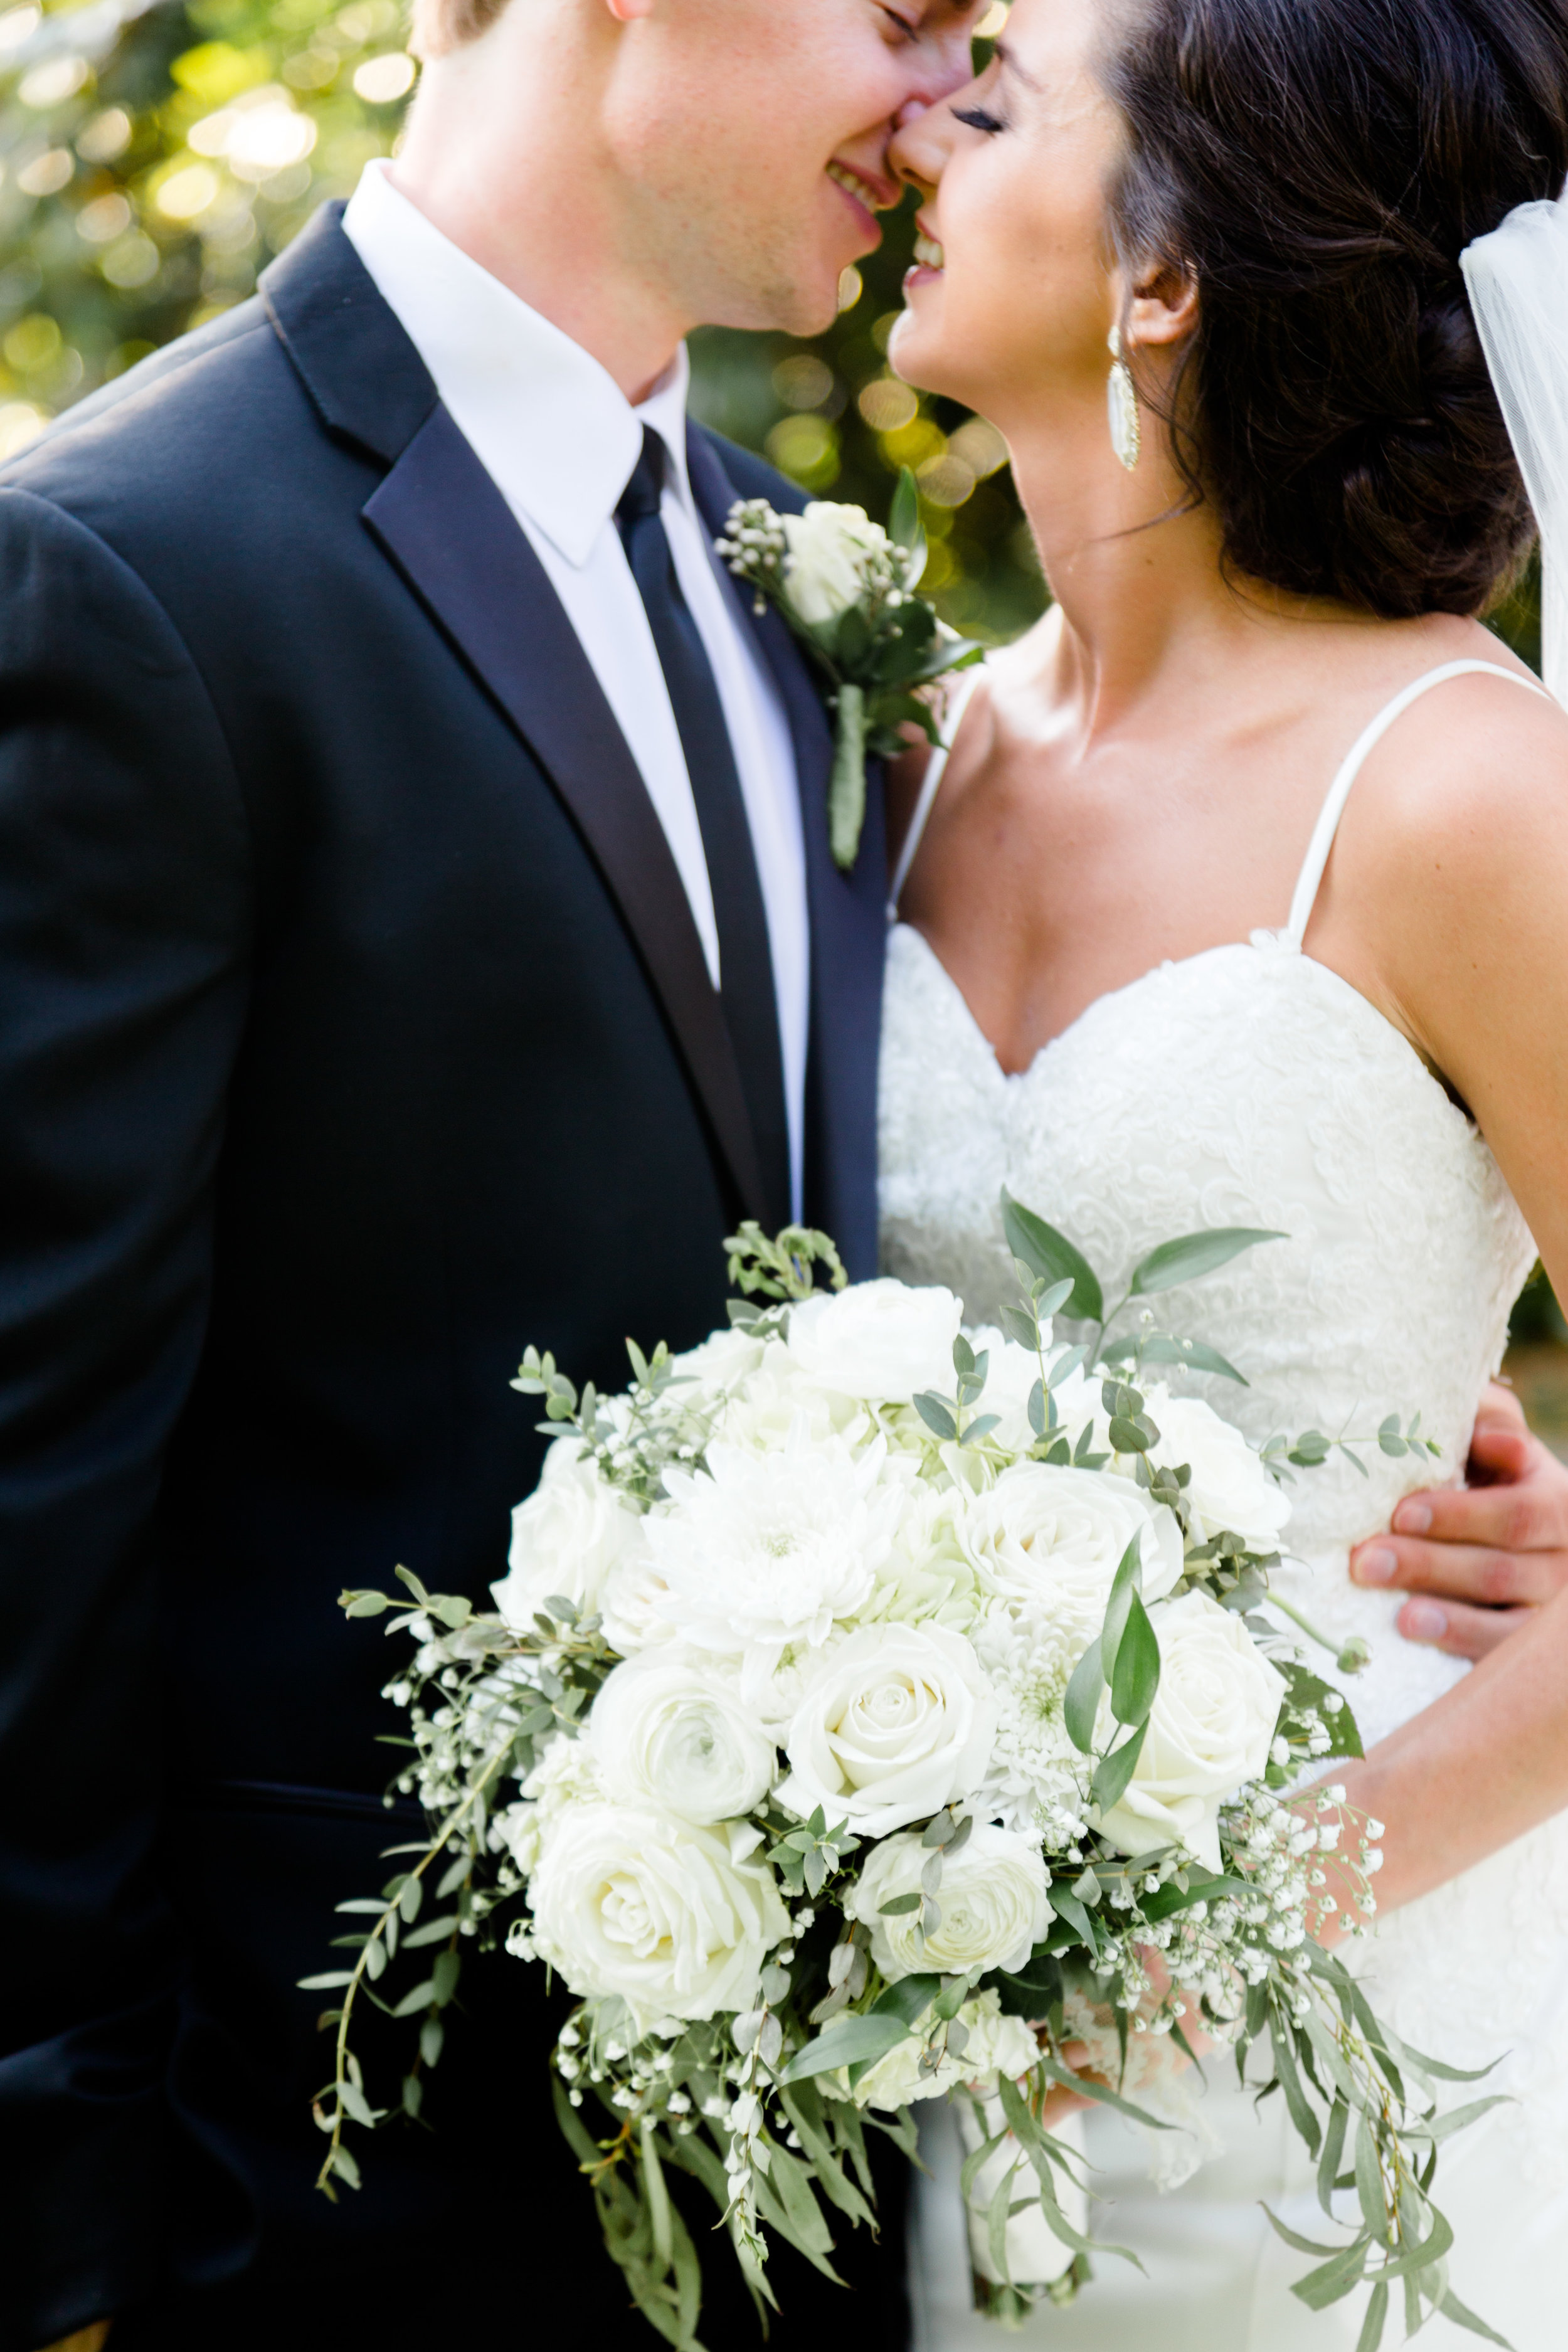 SPRING WEDDING AT THE LAURENS COUNTY MUSEUM